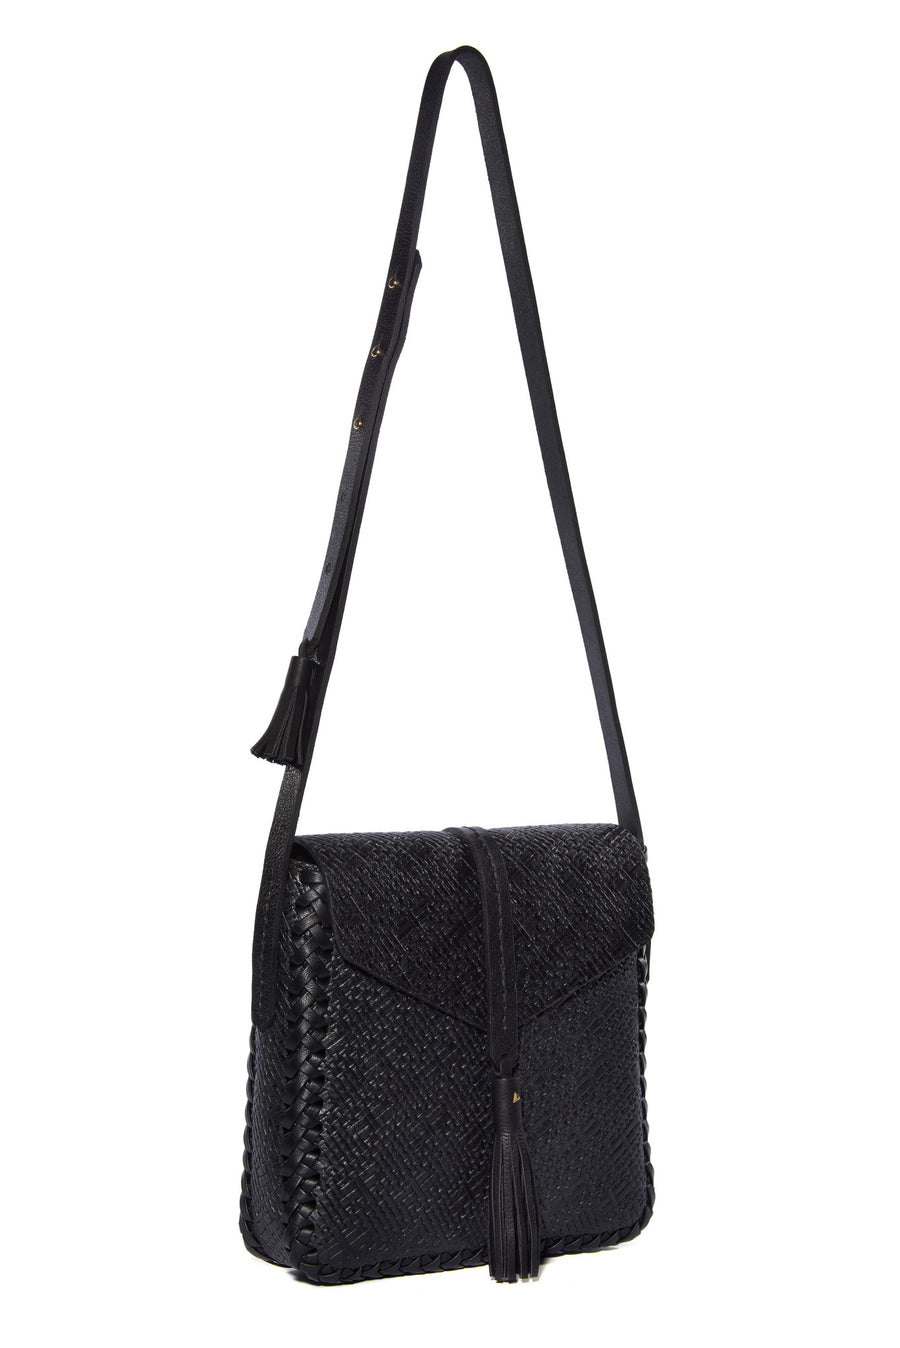 Soft Lambskin Embossed Basket Weave pattern Leather Classic Saddle Envelope Flap Closure Bag Wendy Nichol Handbag Purse Designer Handmade in NYC New York City Cross Body Adjustable Strap interior pocket Fringe Tassel Tassels Structured Braided Square High Quality Leather